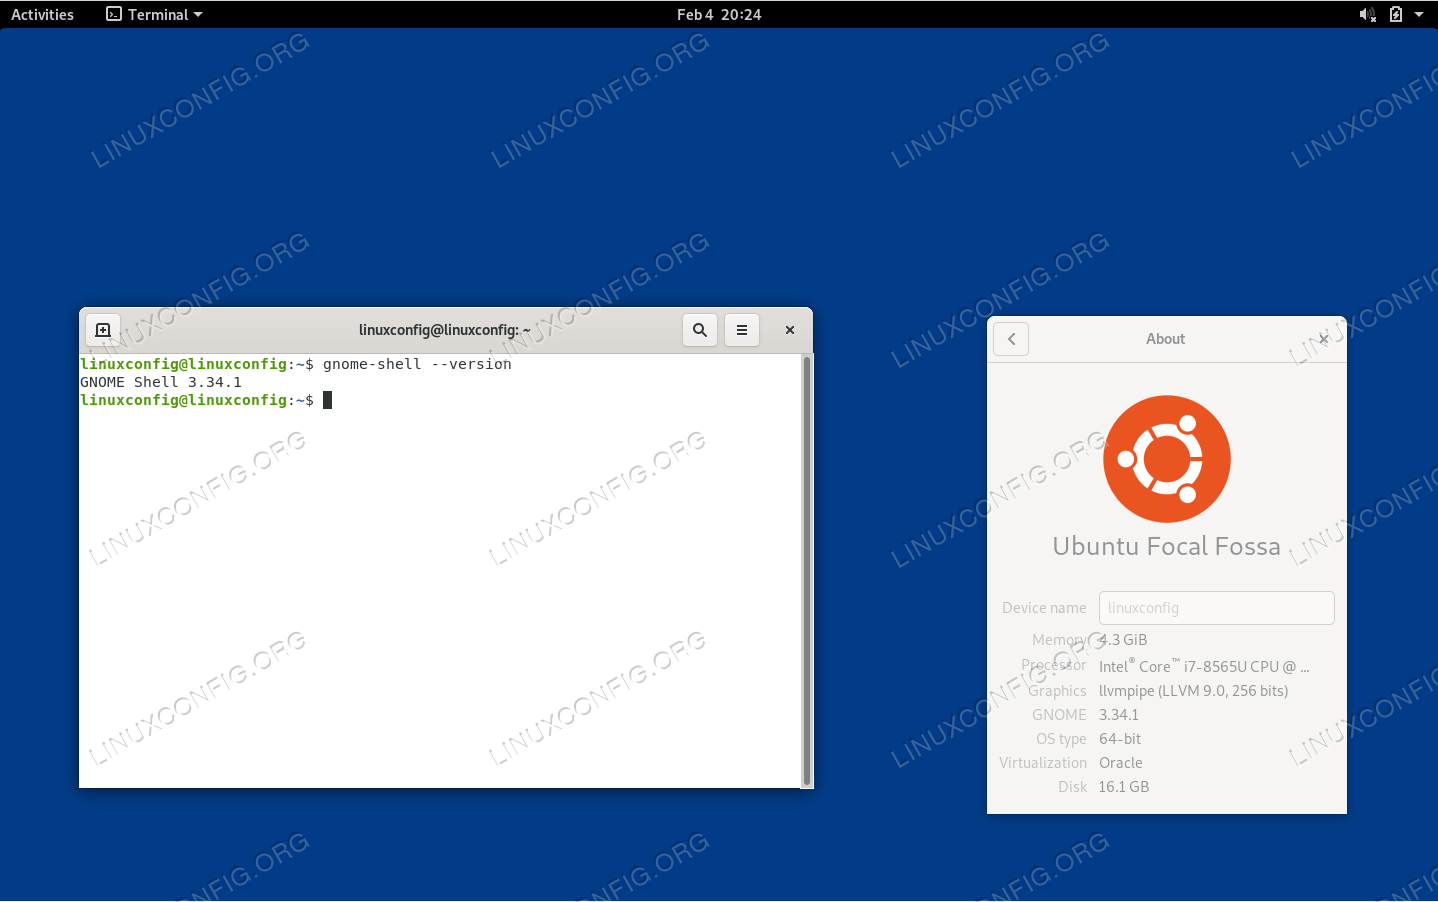 Minimal Gnome Shell installation on Ubuntu 20.04 Focal Fossa Linux